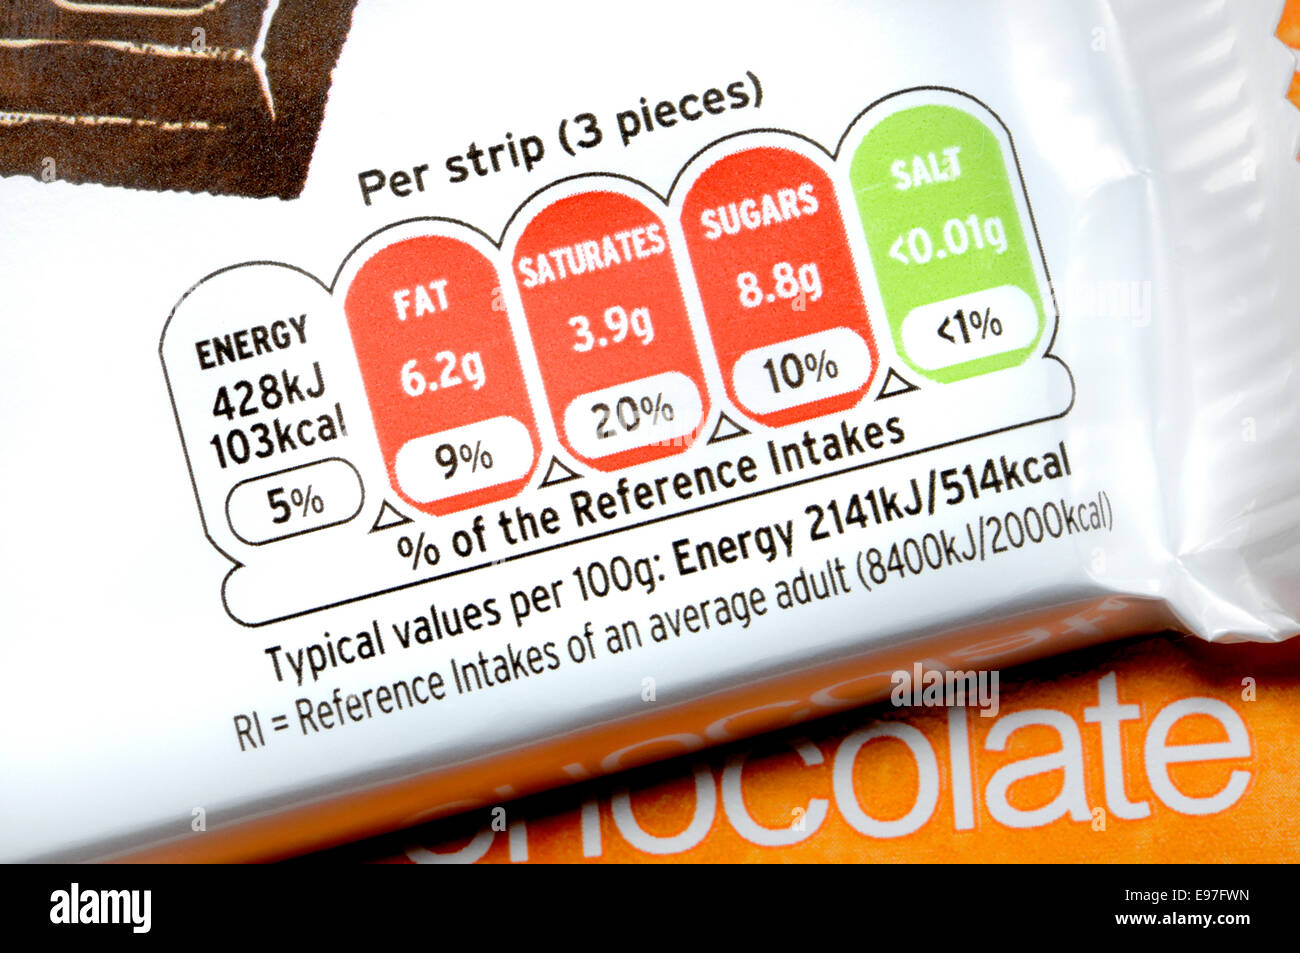 Emballage chocolat montrant l'information nutritionnelle Photo Stock